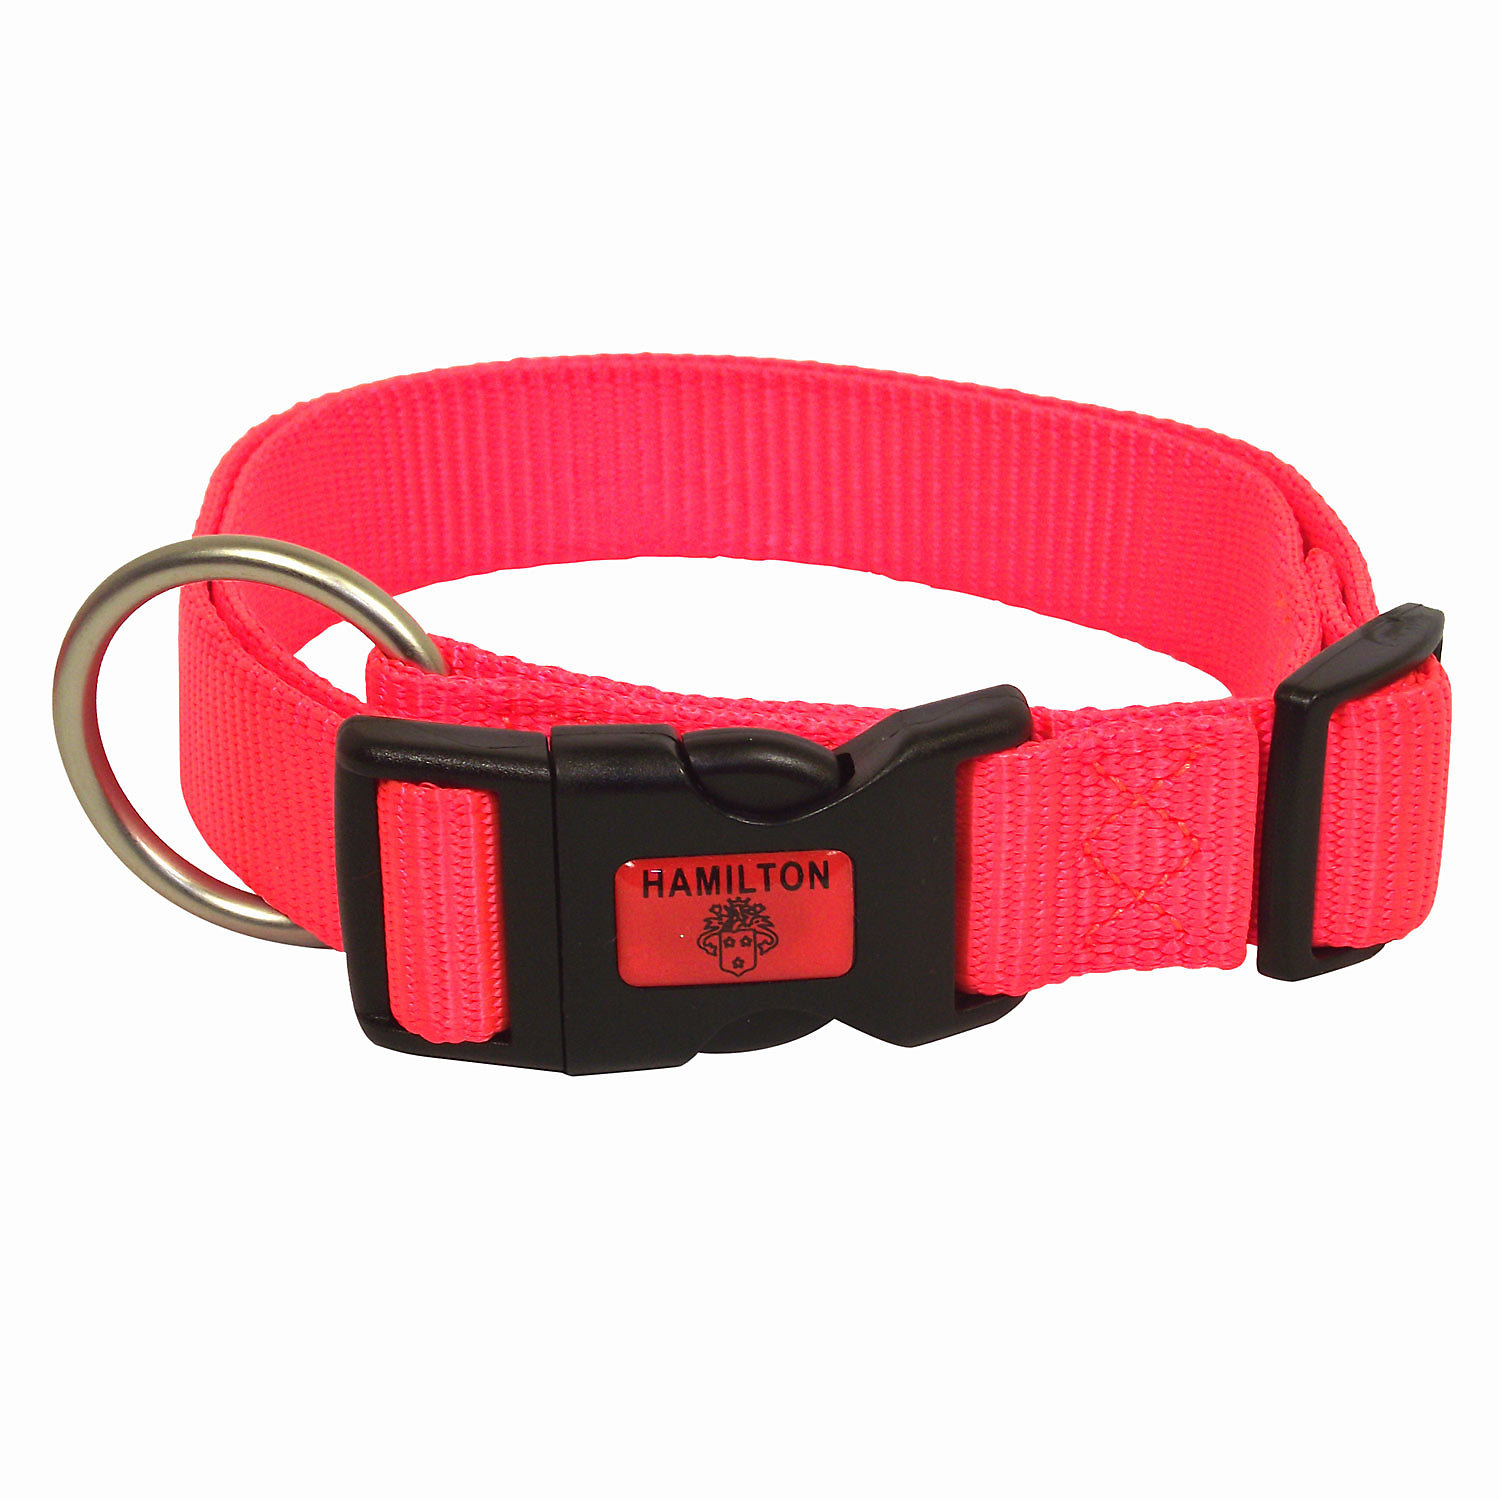 Hamilton Adjustable Nylon Dog Collar In Orange Large 16 26 L X 1 W